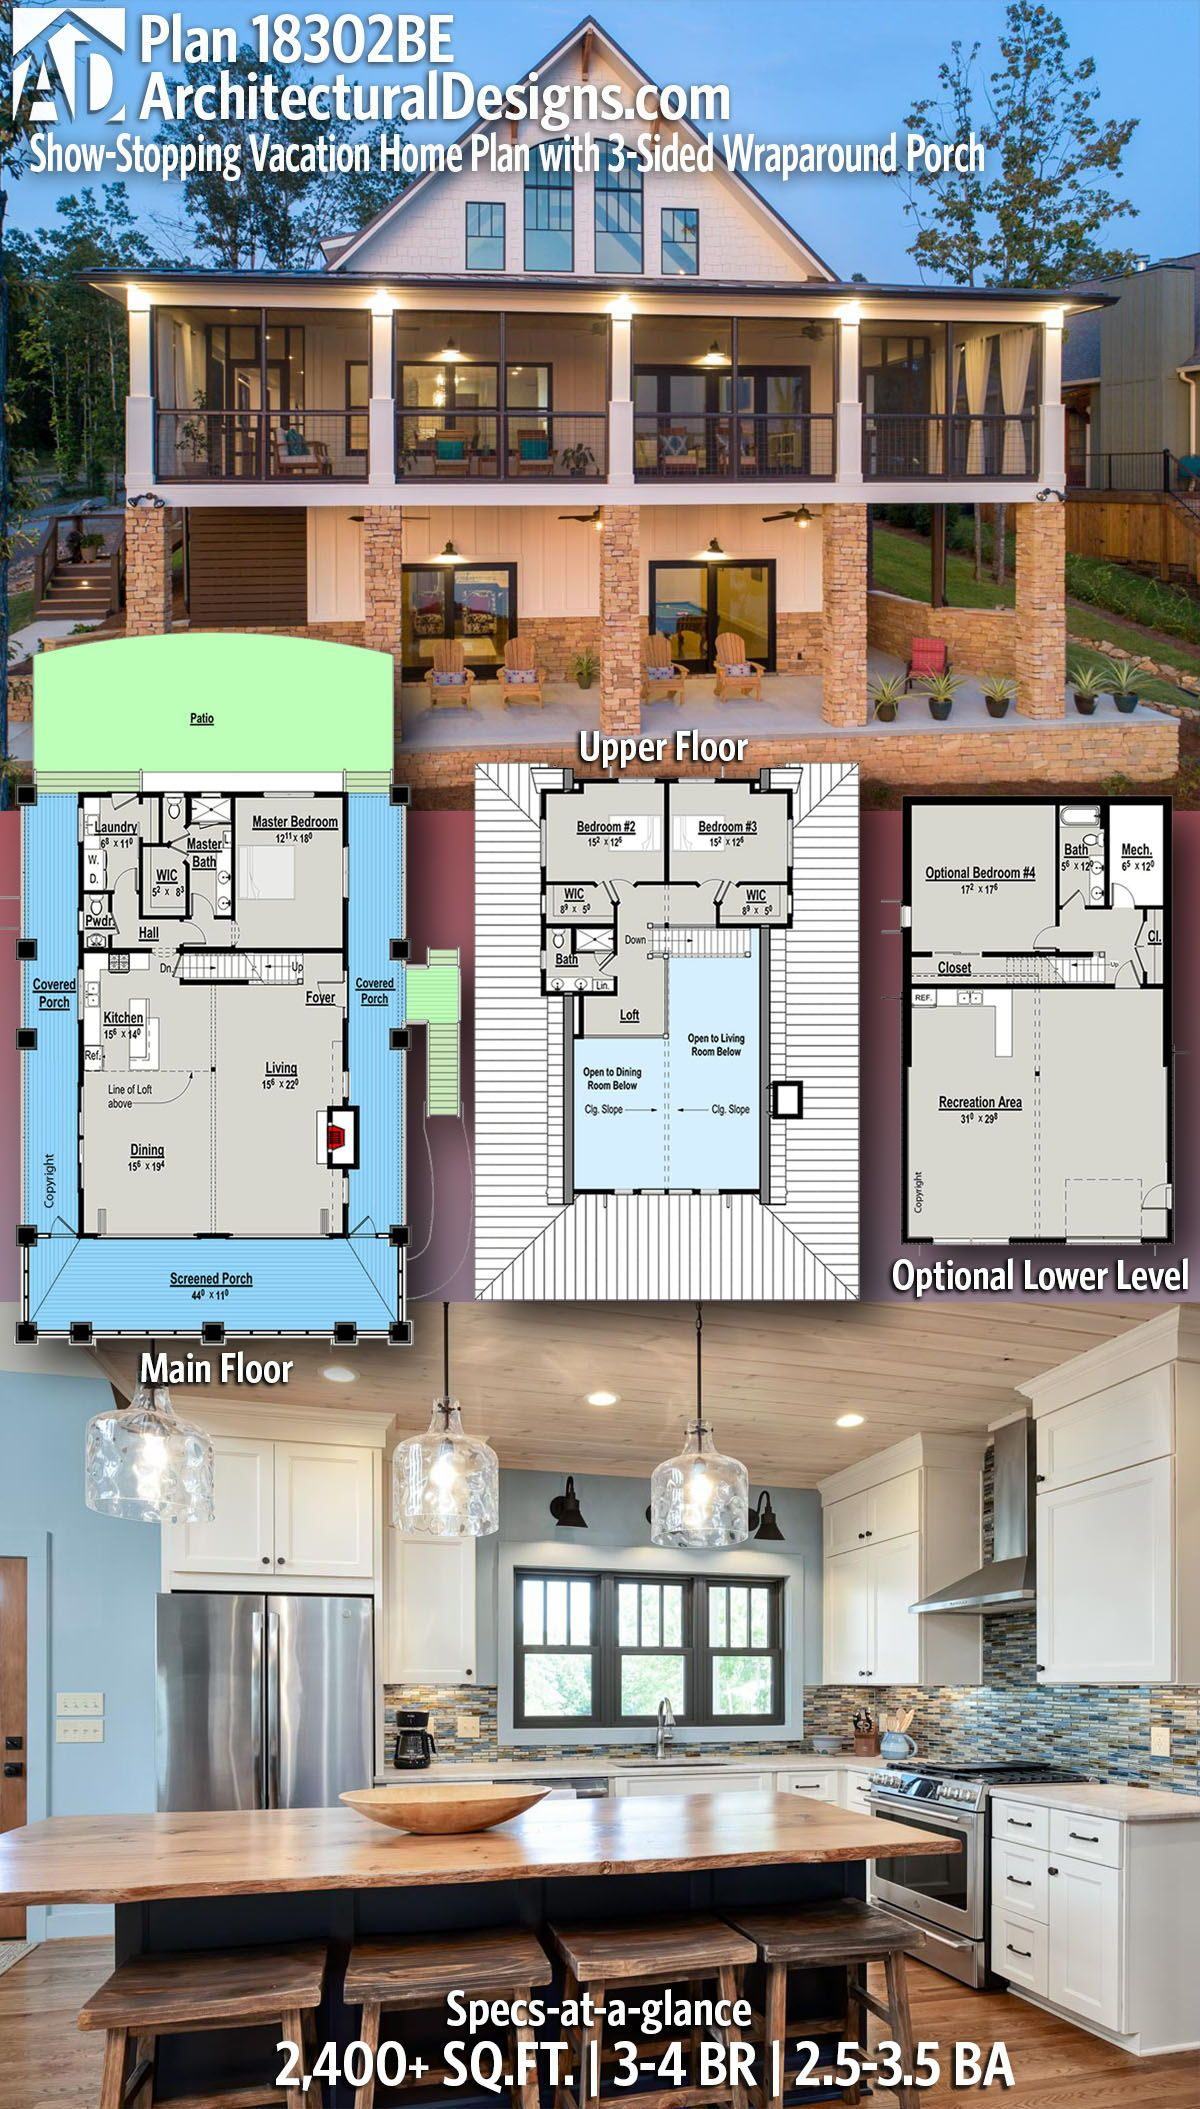 Plan 18302be Exclusive Show Stopping Vacation Home Plan With 3 Sided Wraparound Porch In 2020 House Plans Craftsman House Plans Vacation Home